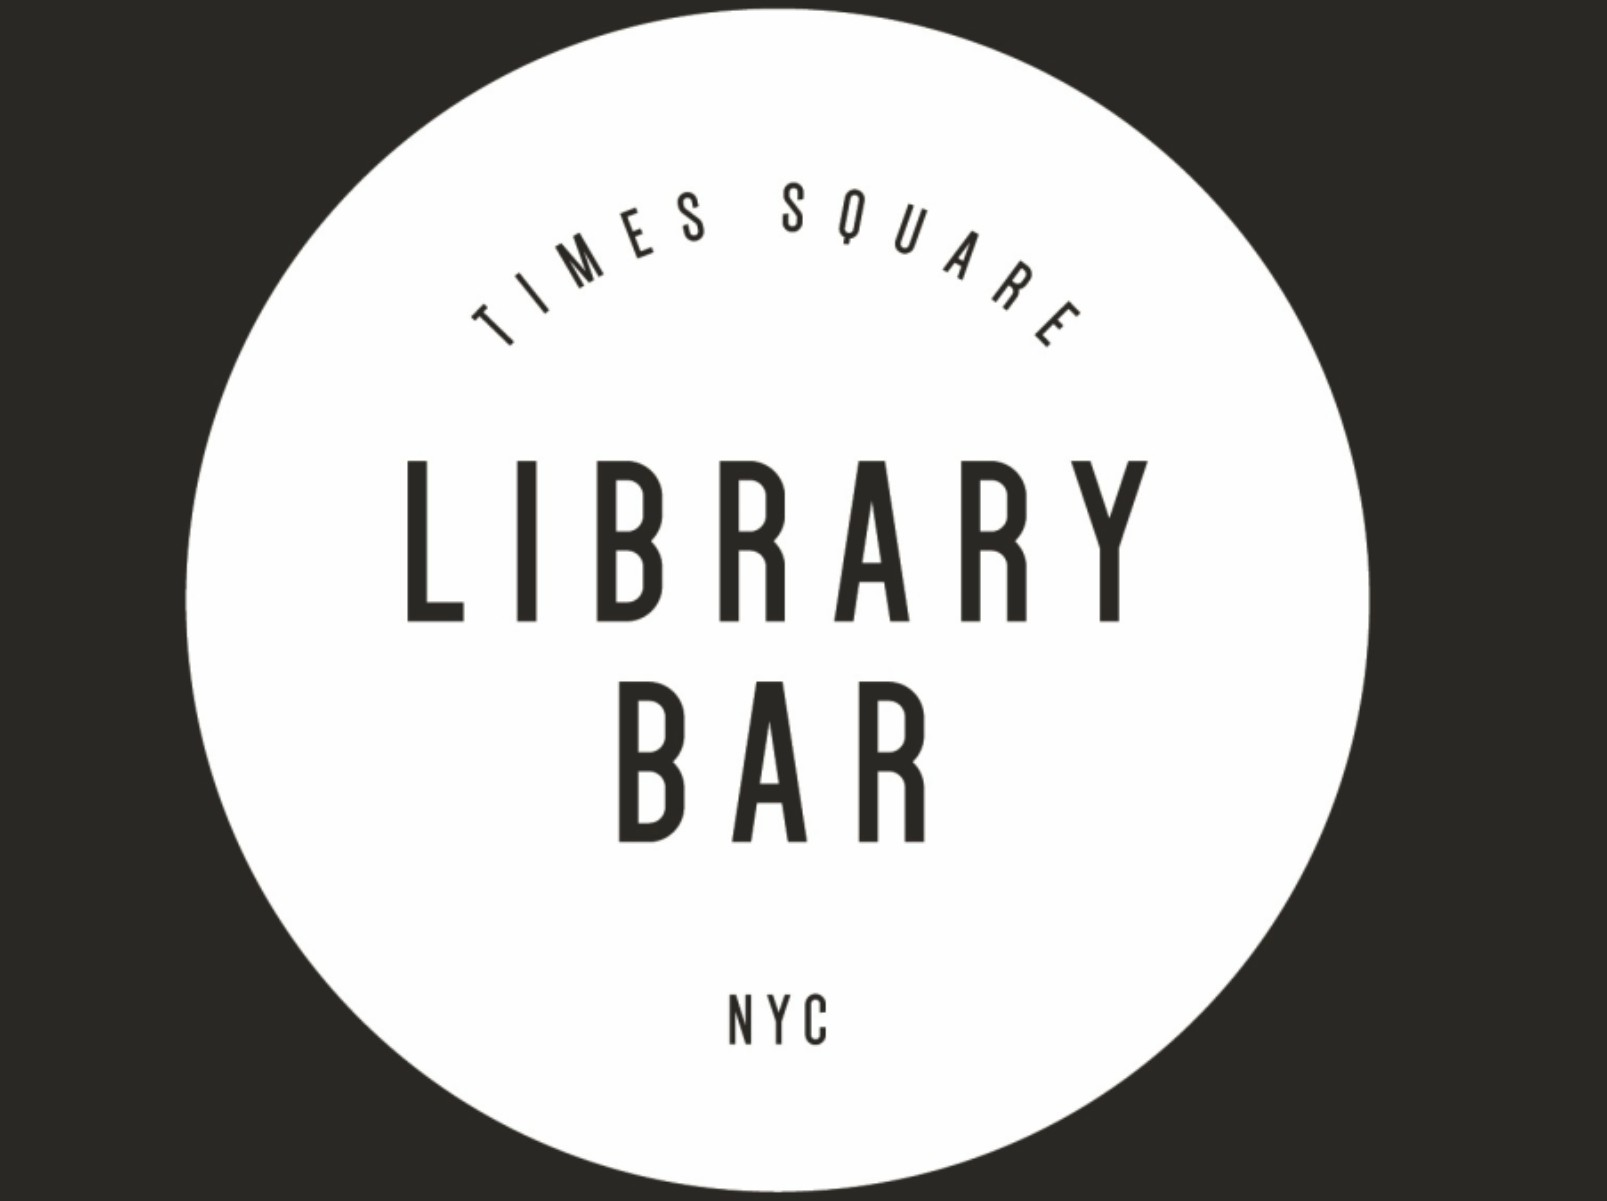 Sheraton New York Times Square Hotel - Library Bar